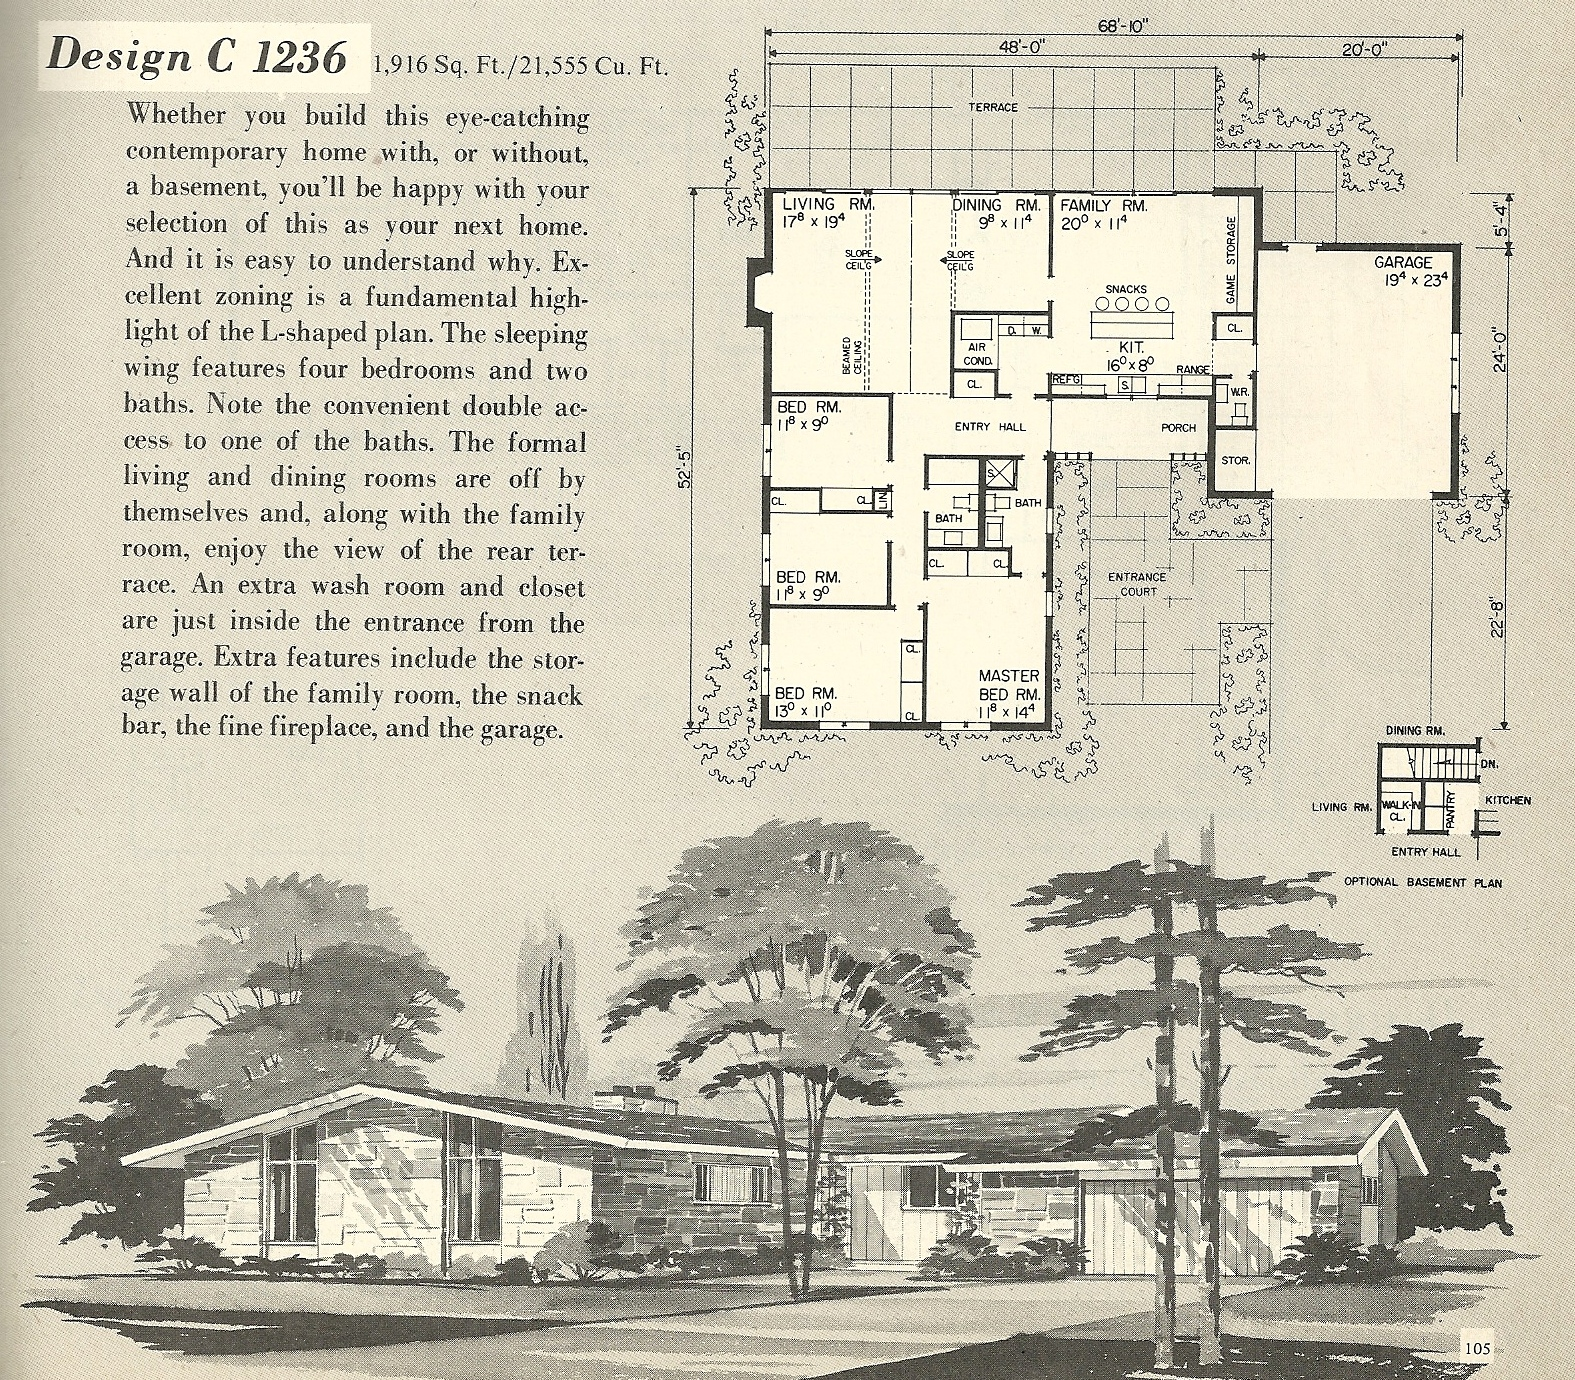 Vintage house plans 1236 antique alter ego Mid century modern home plans